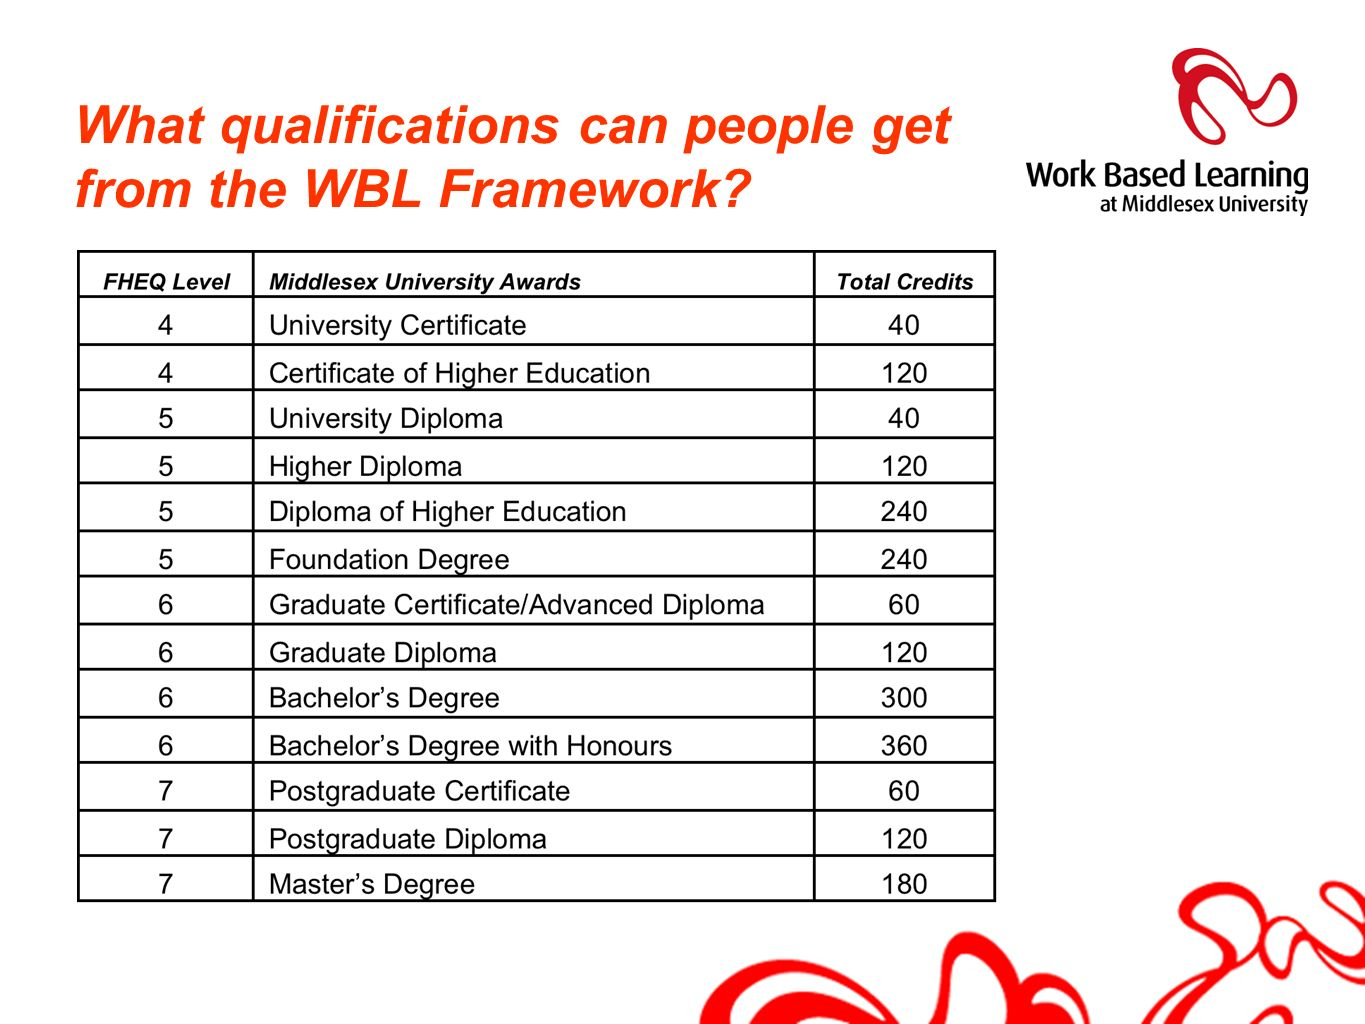 What qualifications can people get from the WBL Framework